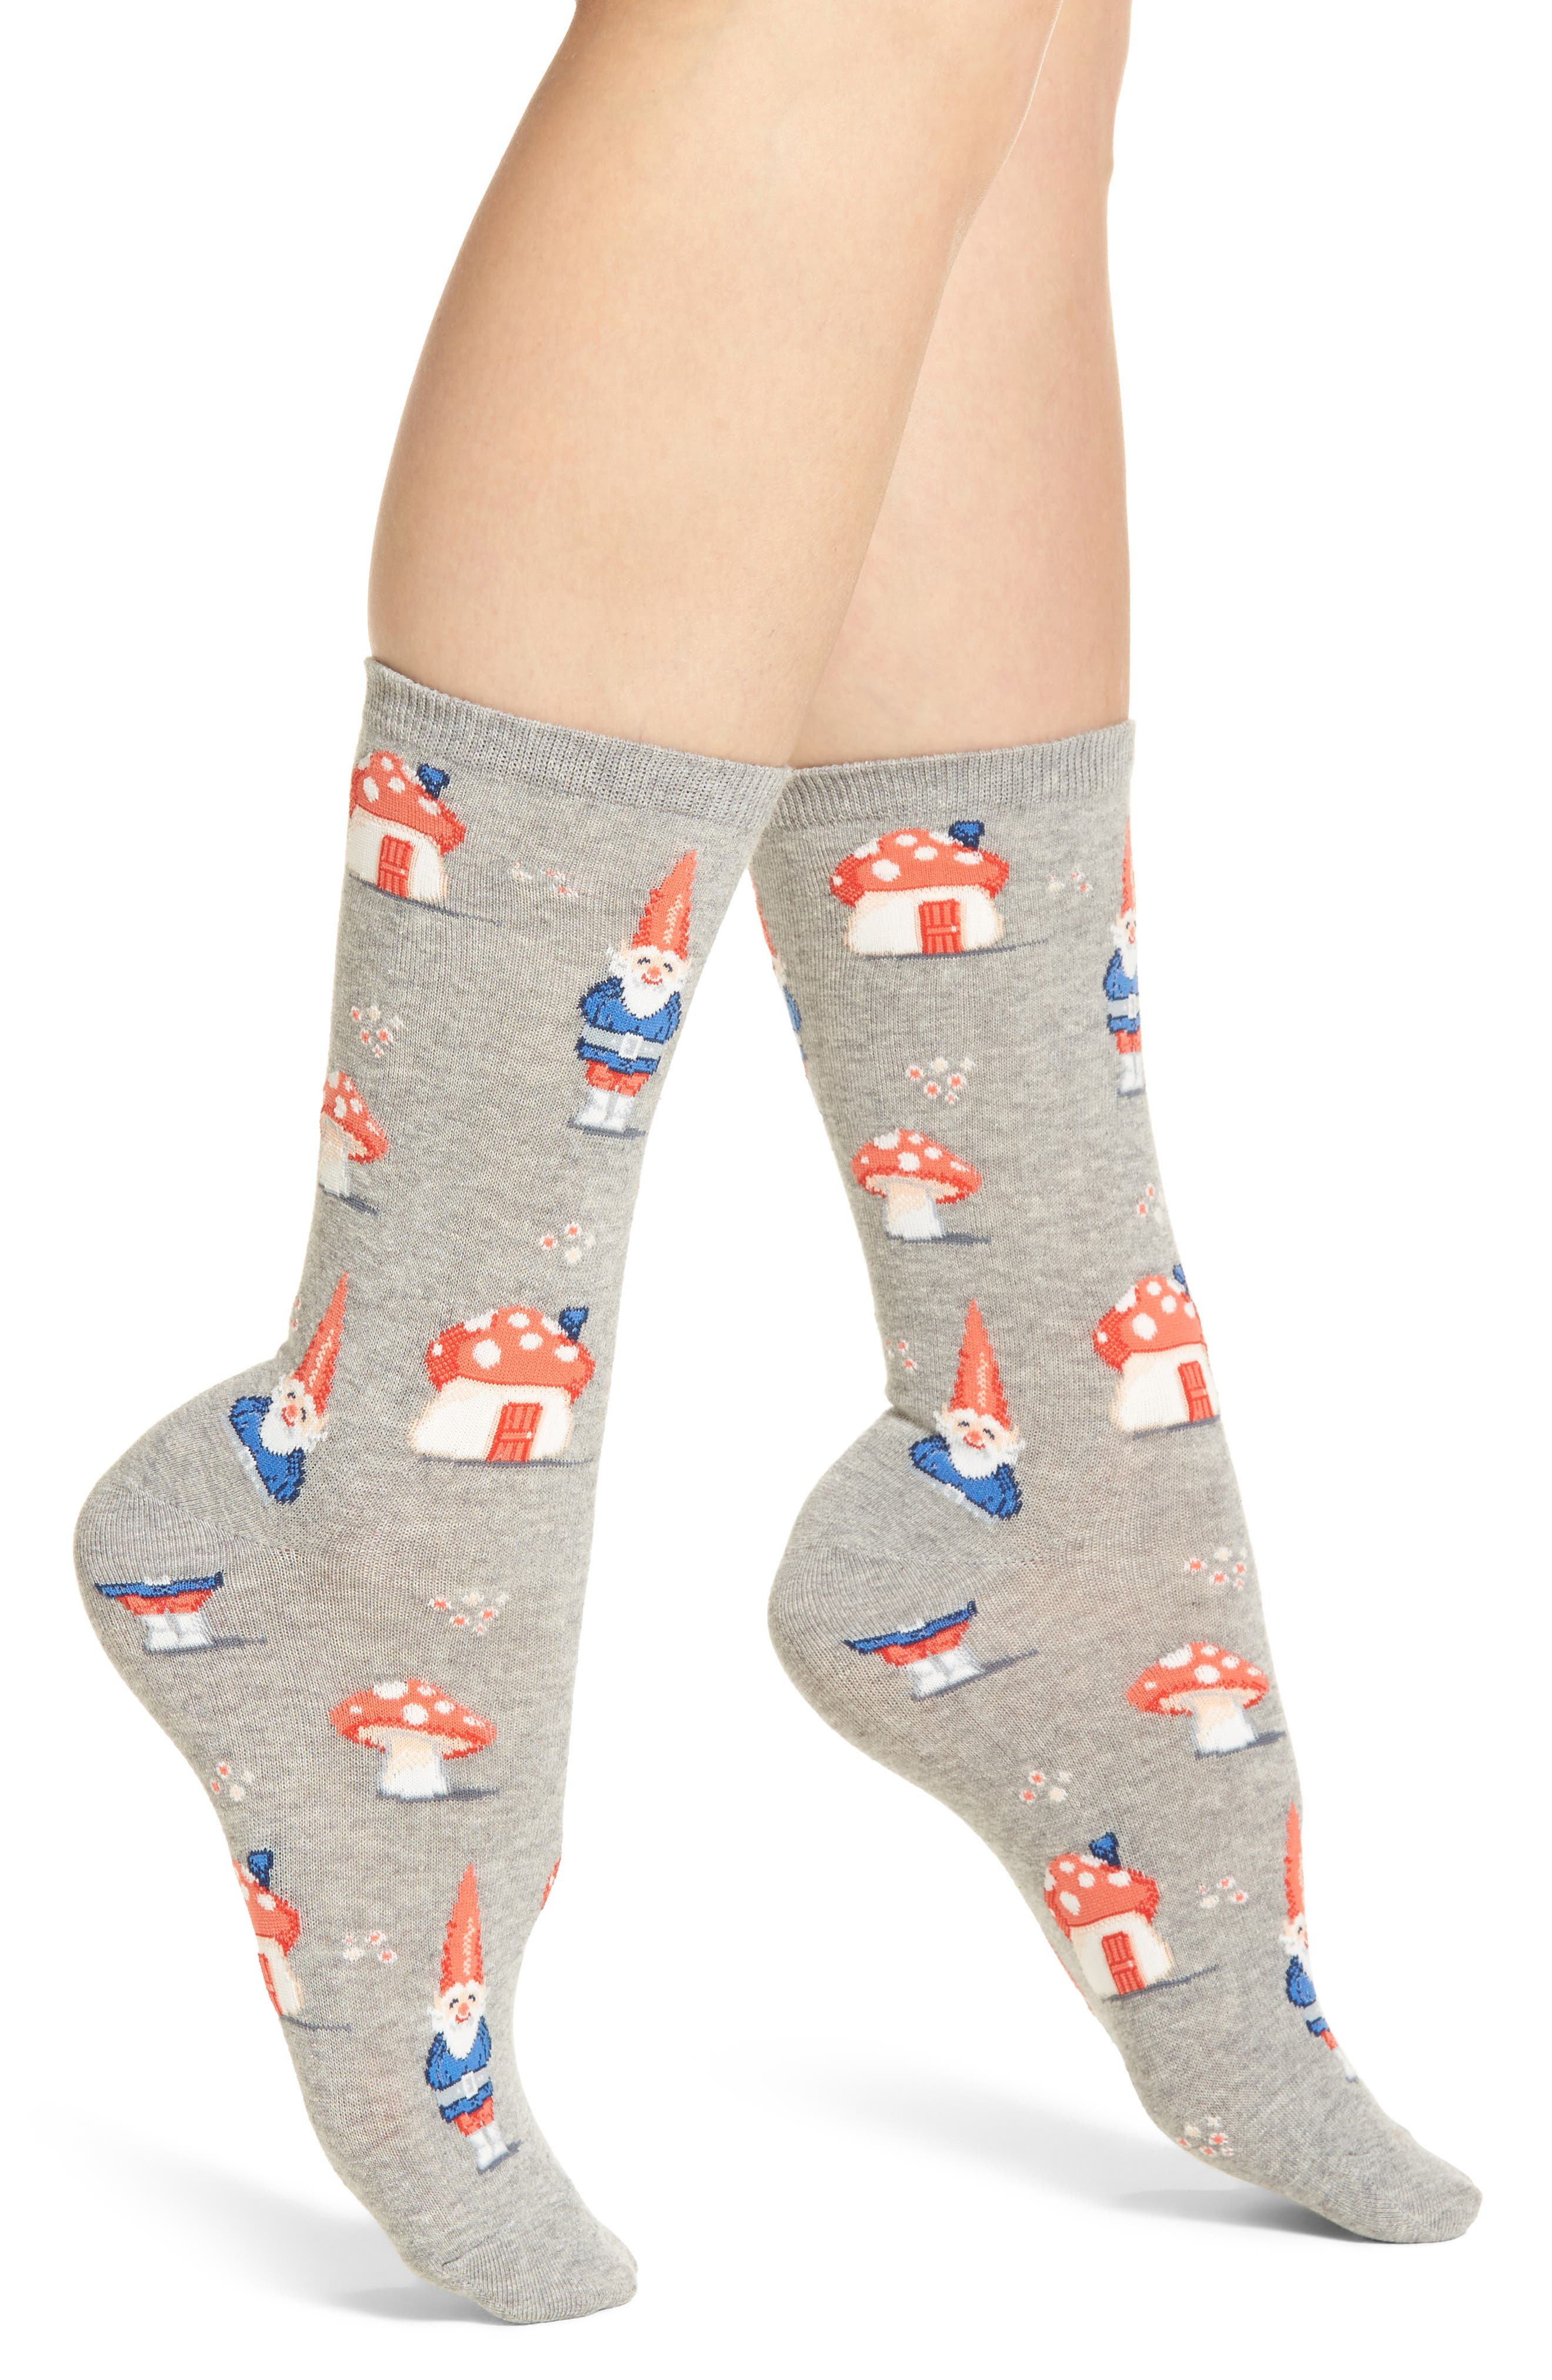 Gnomes Crew Socks,                             Main thumbnail 1, color,                             Grey Heather